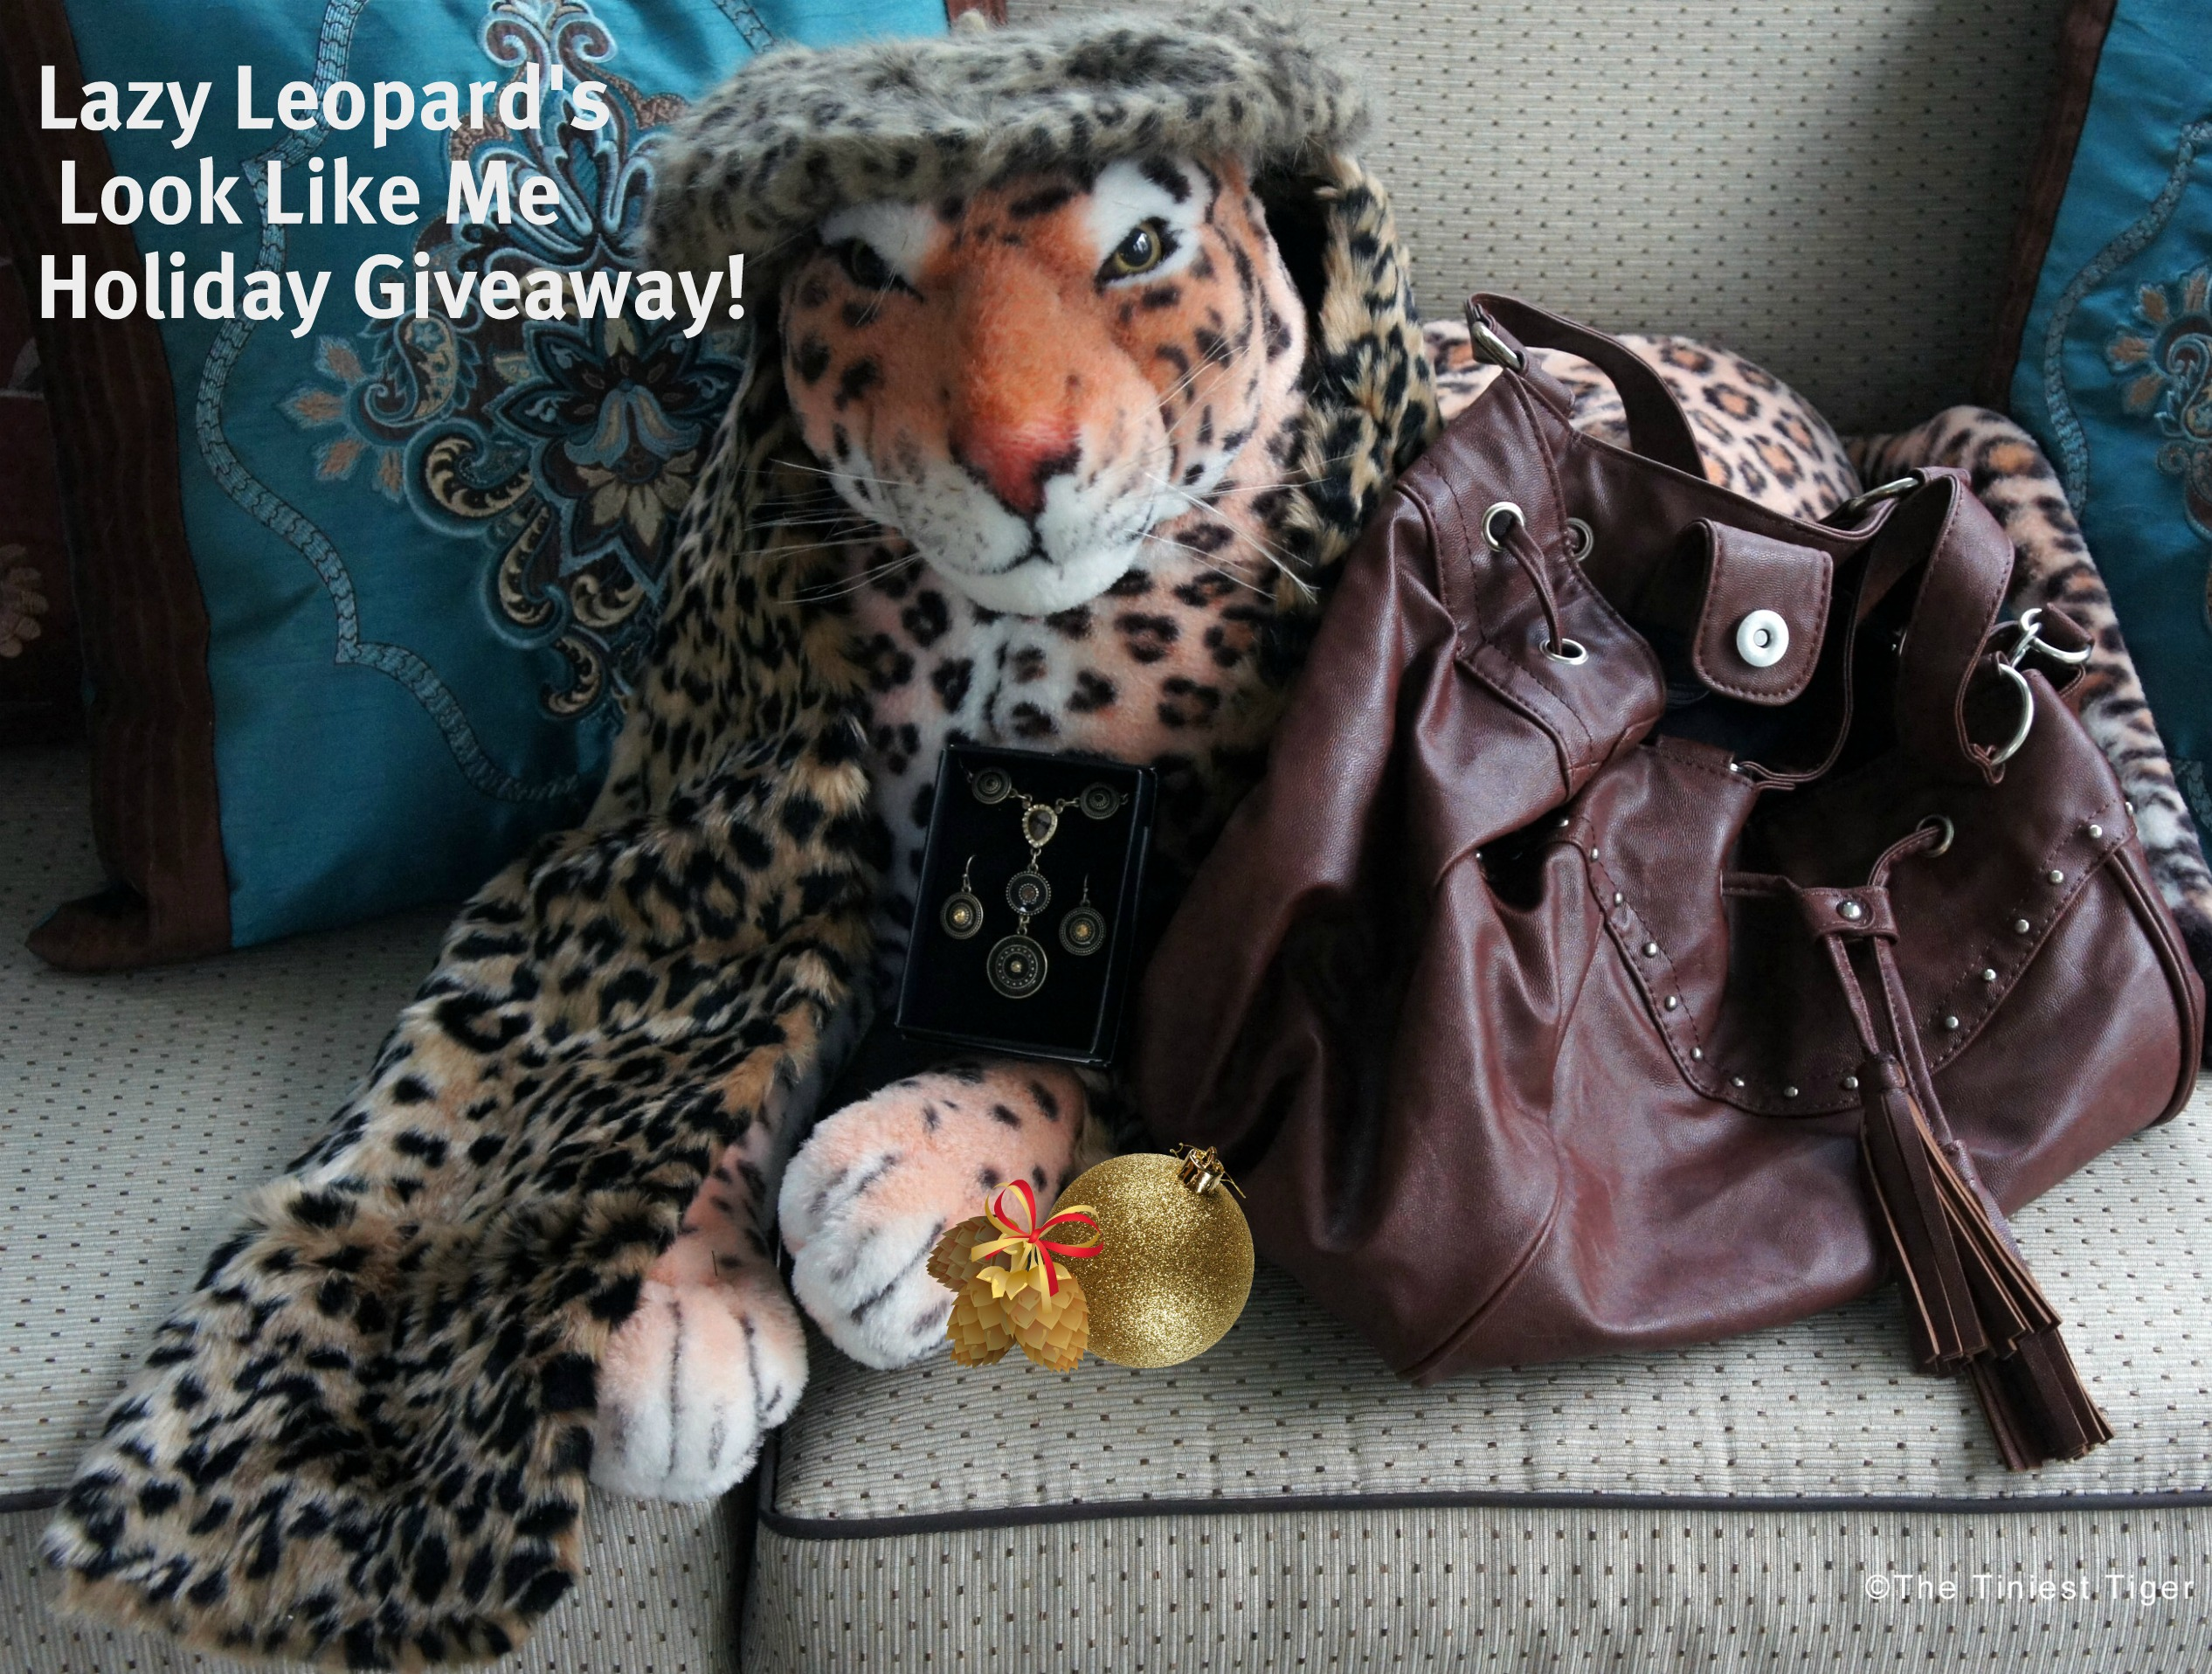 Lazy Leopard's Look Like Me Holiday Giveaway!